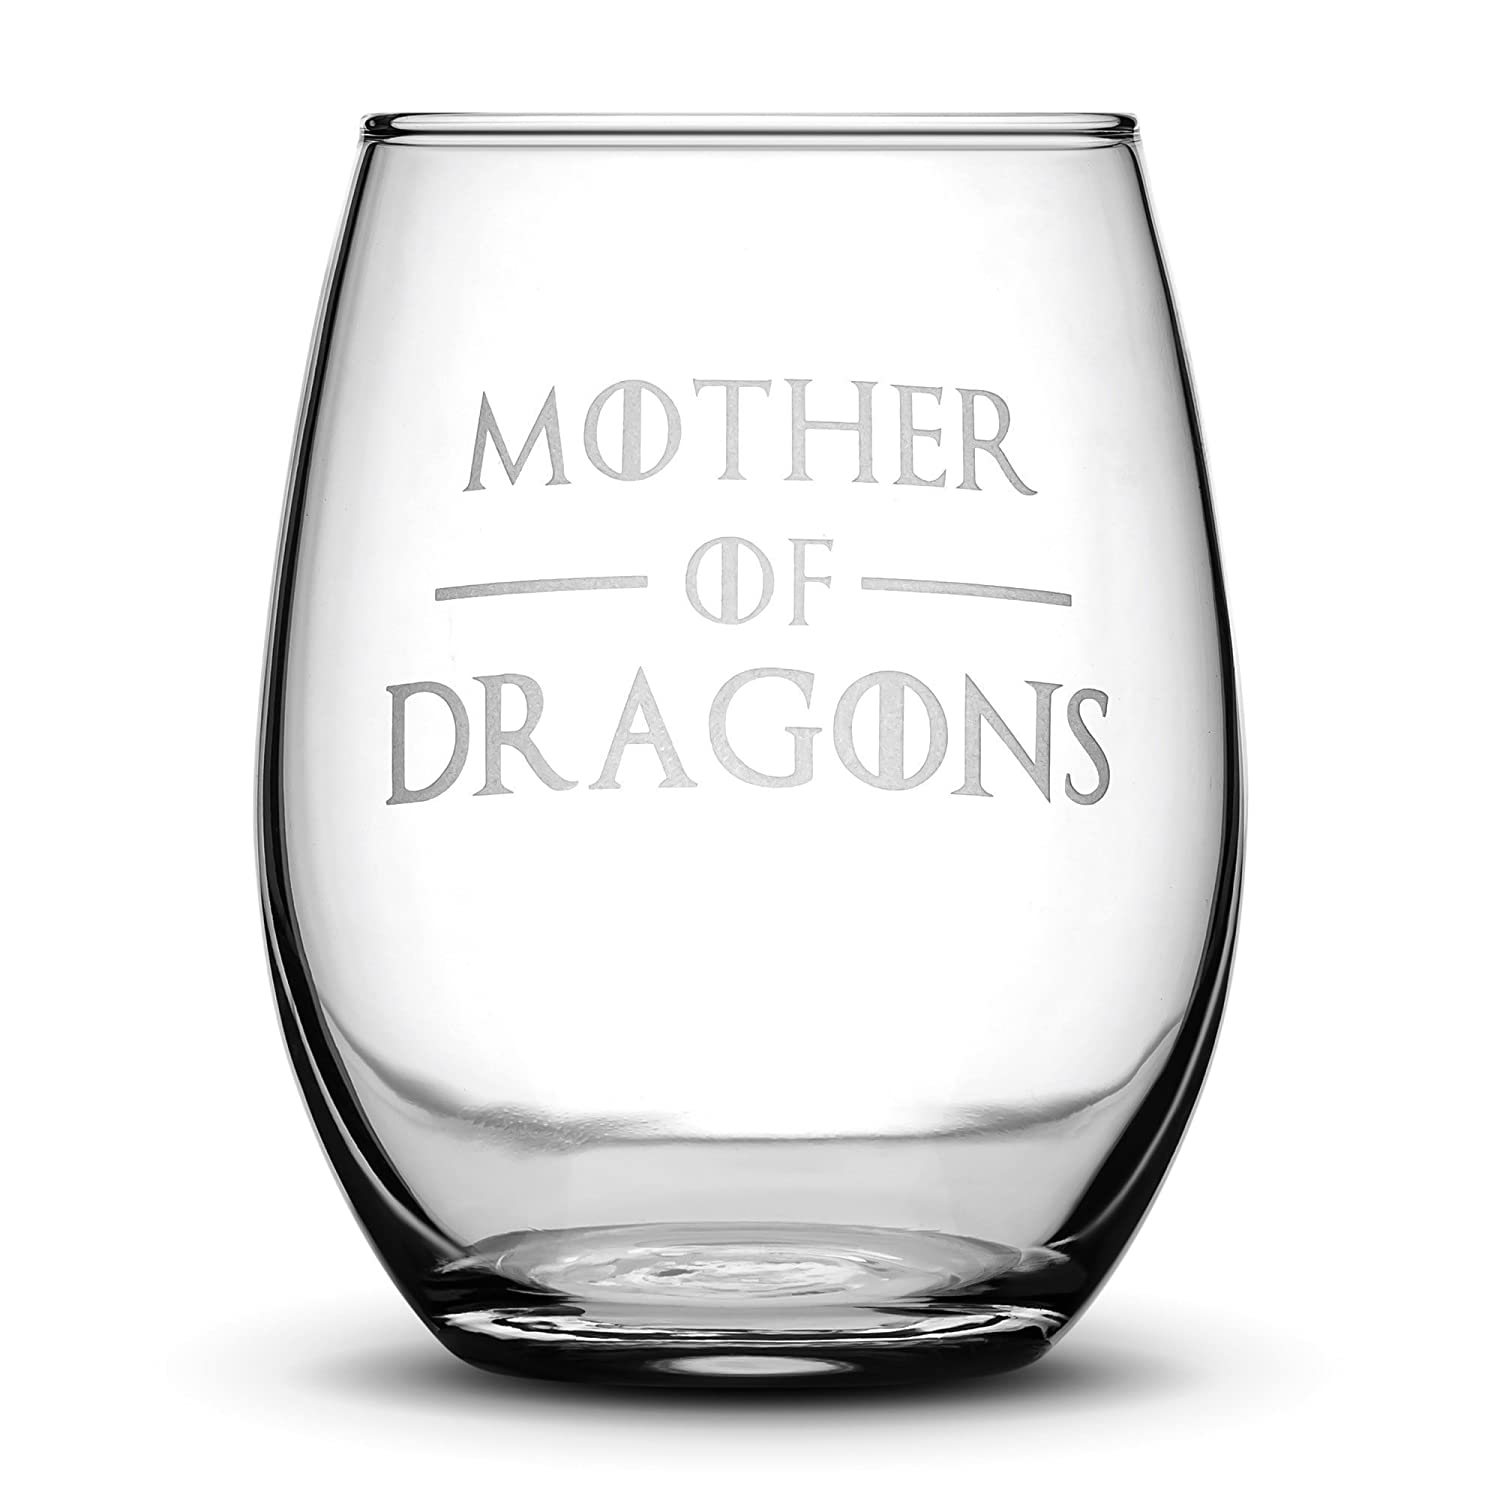 Integrity Bottles Premium Sale price Wine Glass Et Mother Popular shop is the lowest price challenge Dragons Hand of